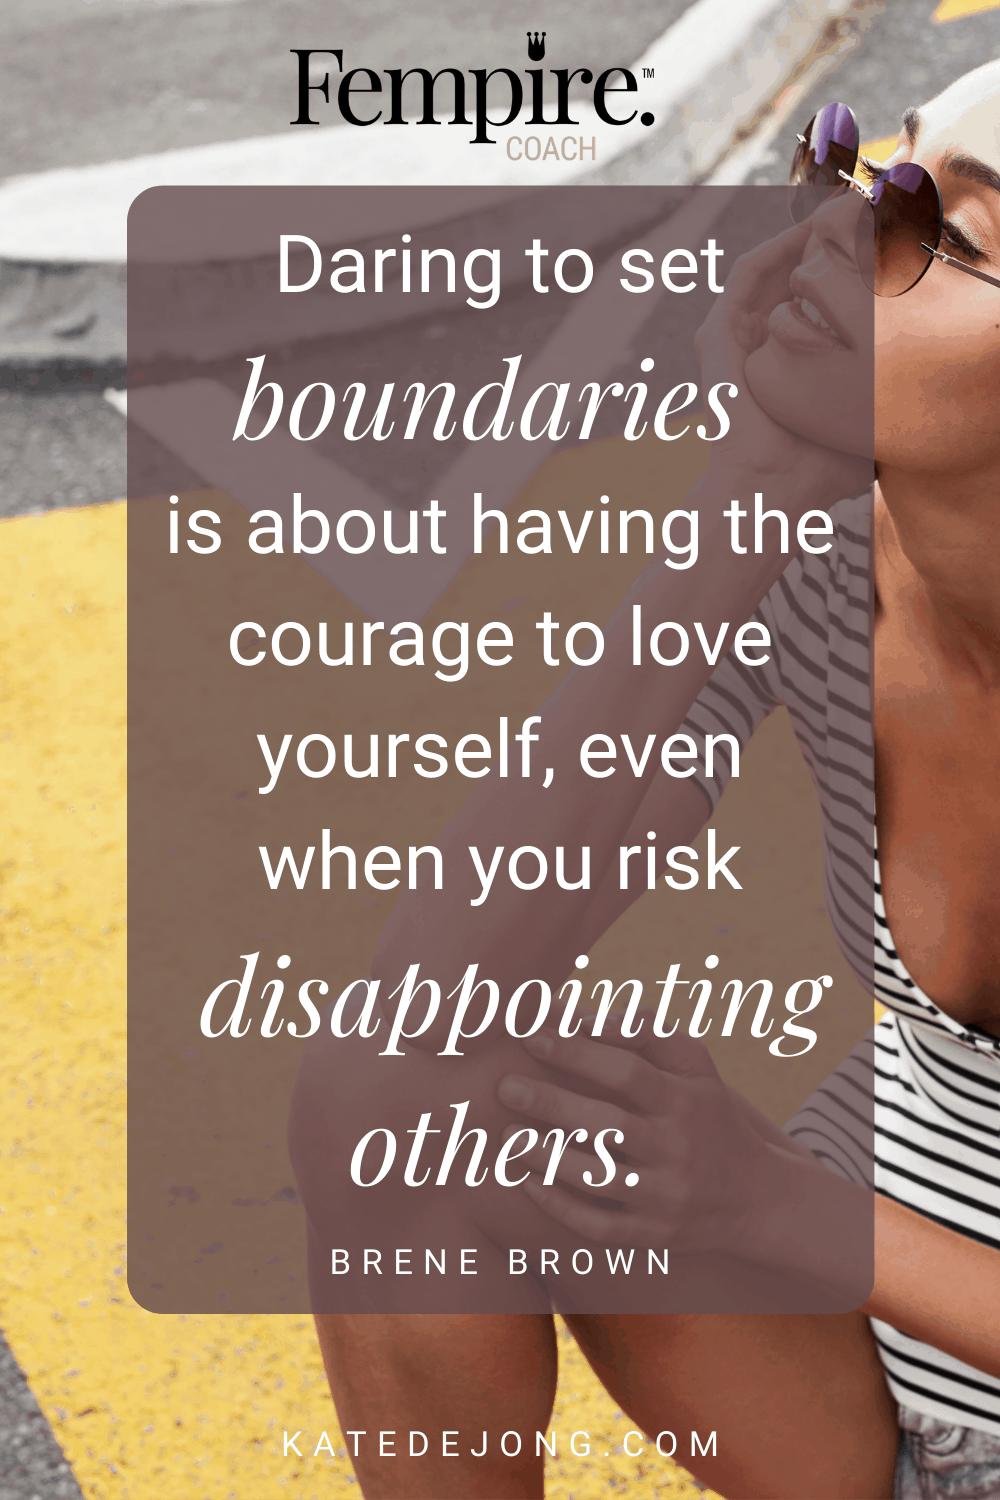 If you grew up as a people-pleaser, it can be difficult set strong, healthy boundaries. Can you relate? Here are some practical ways that you can protect your own sanity and well-being with strong and healthy personal boundaries. #fempire #fempirecoach #strongboundaries #healthyboundaries #womensupportingwomen #boundaries #relationships #selfcare #selflove #personalgrowth